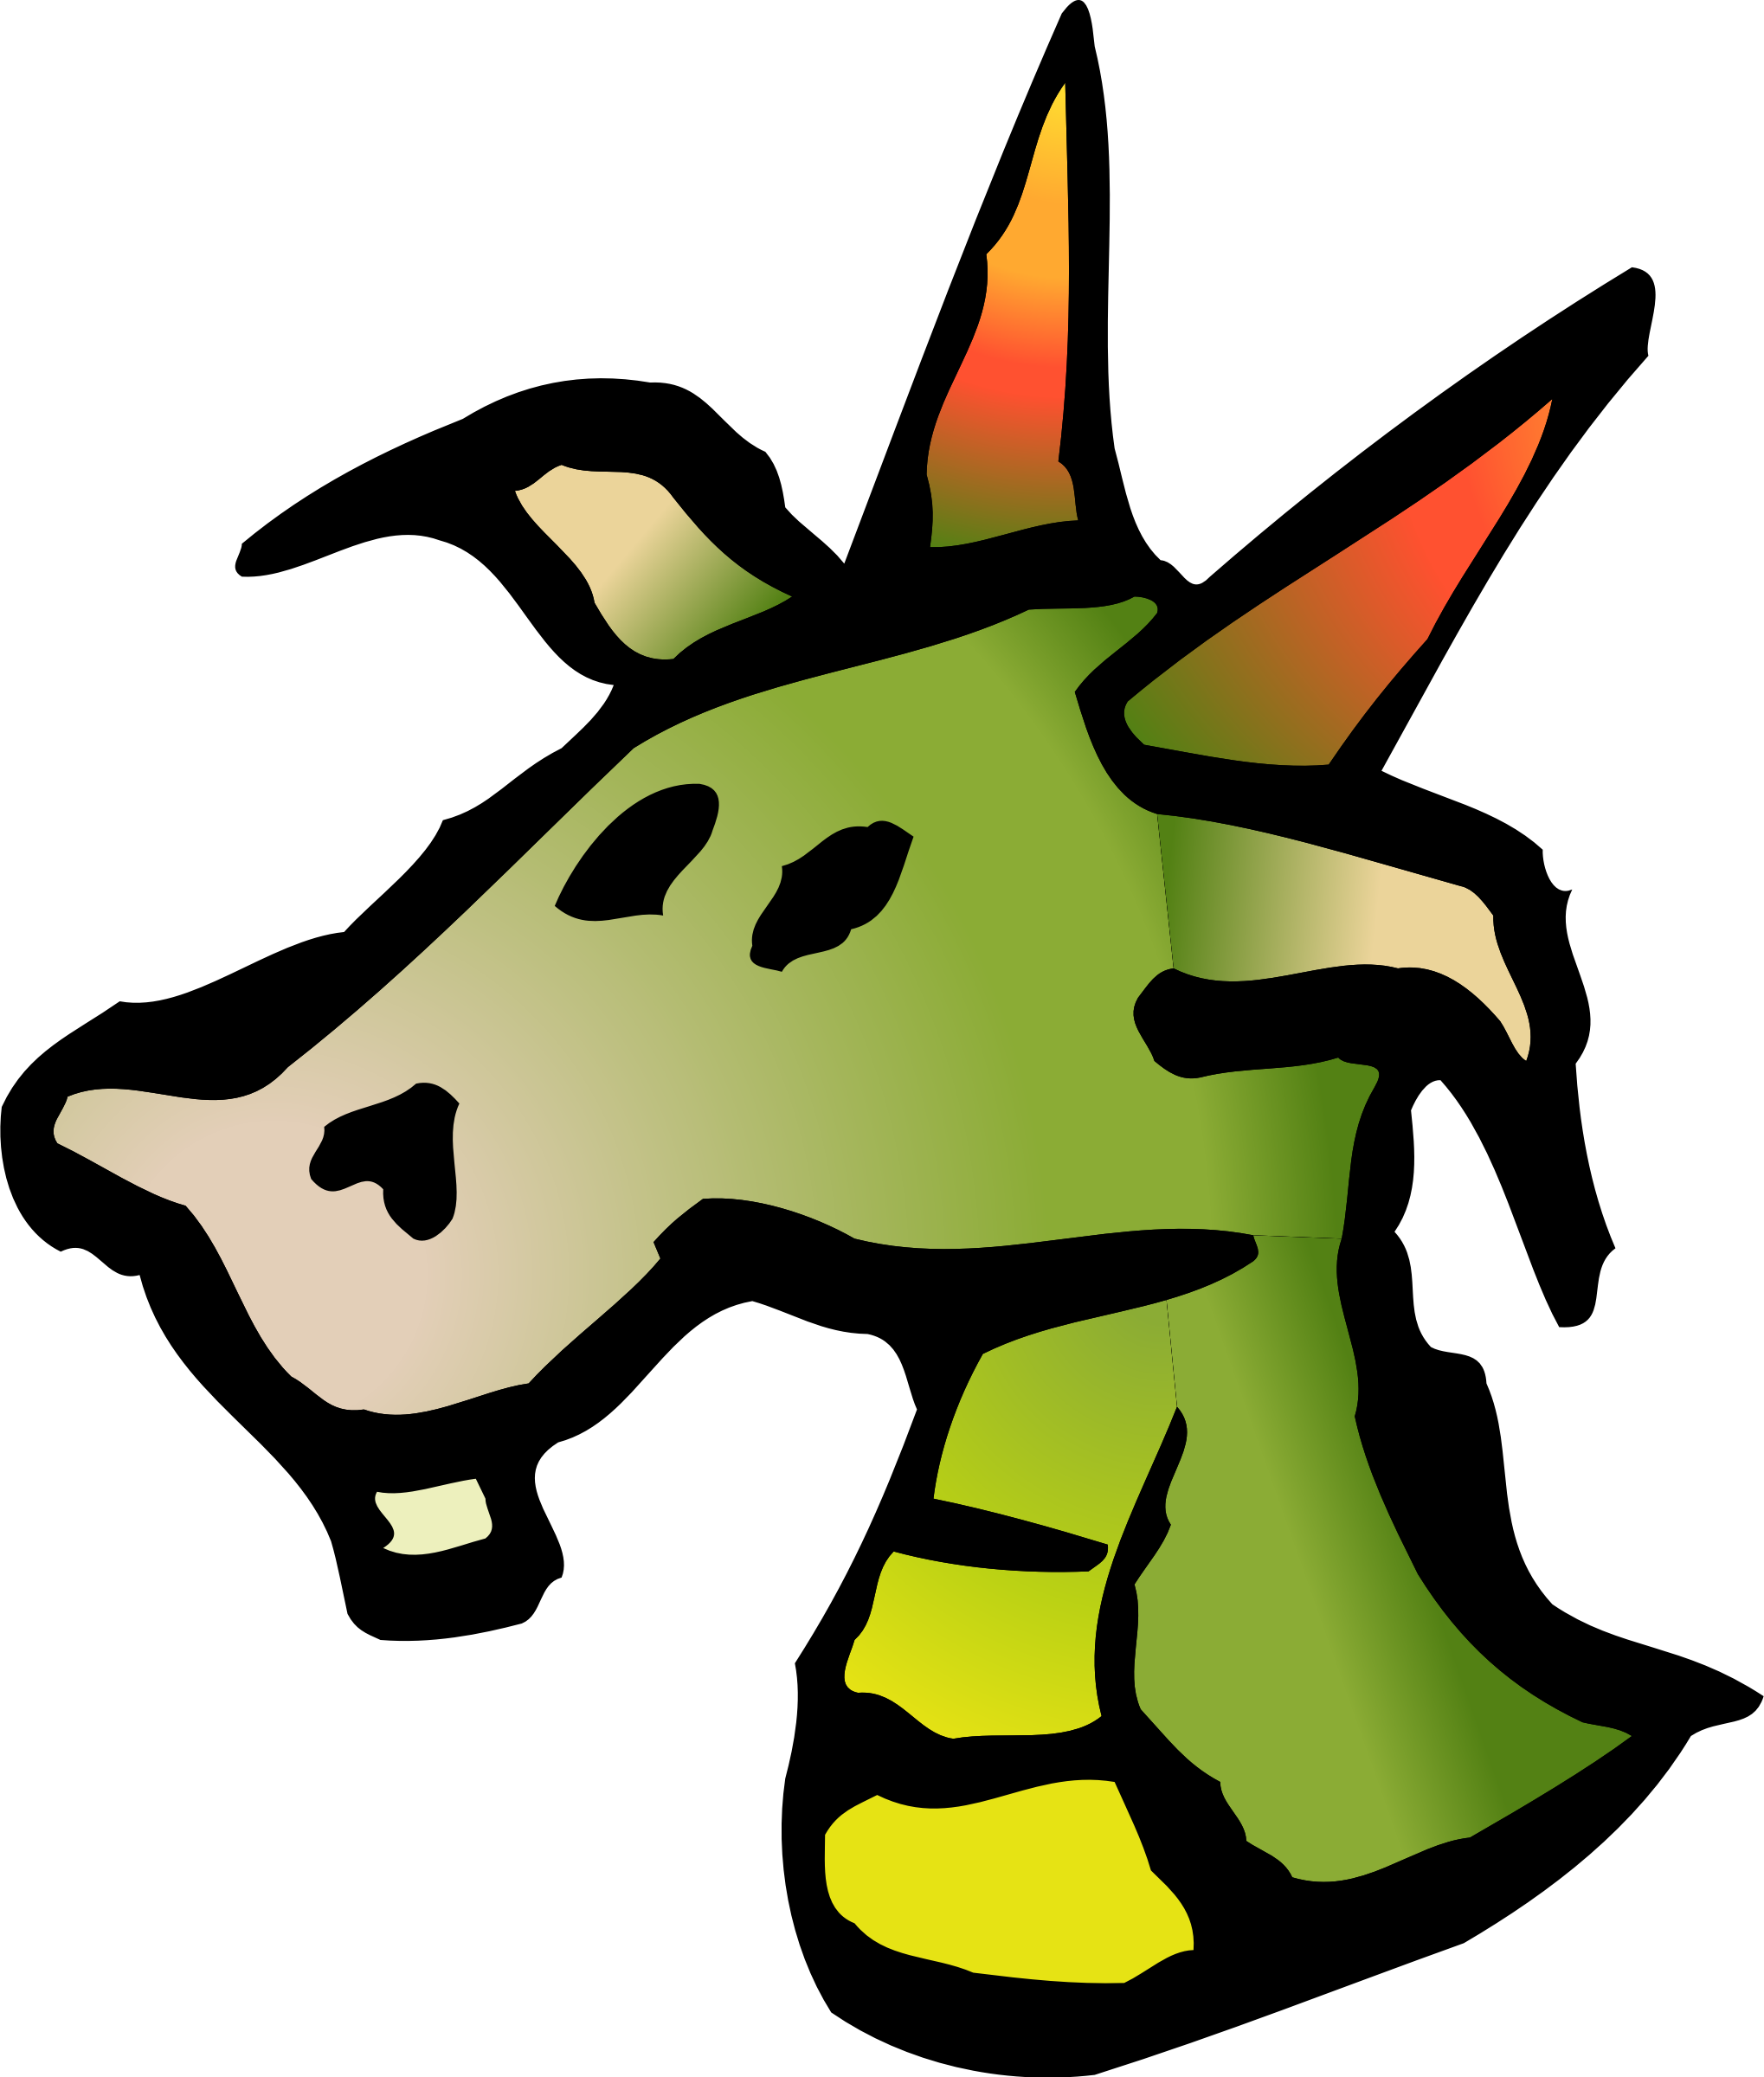 Icon big image png. Mouth clipart dragon